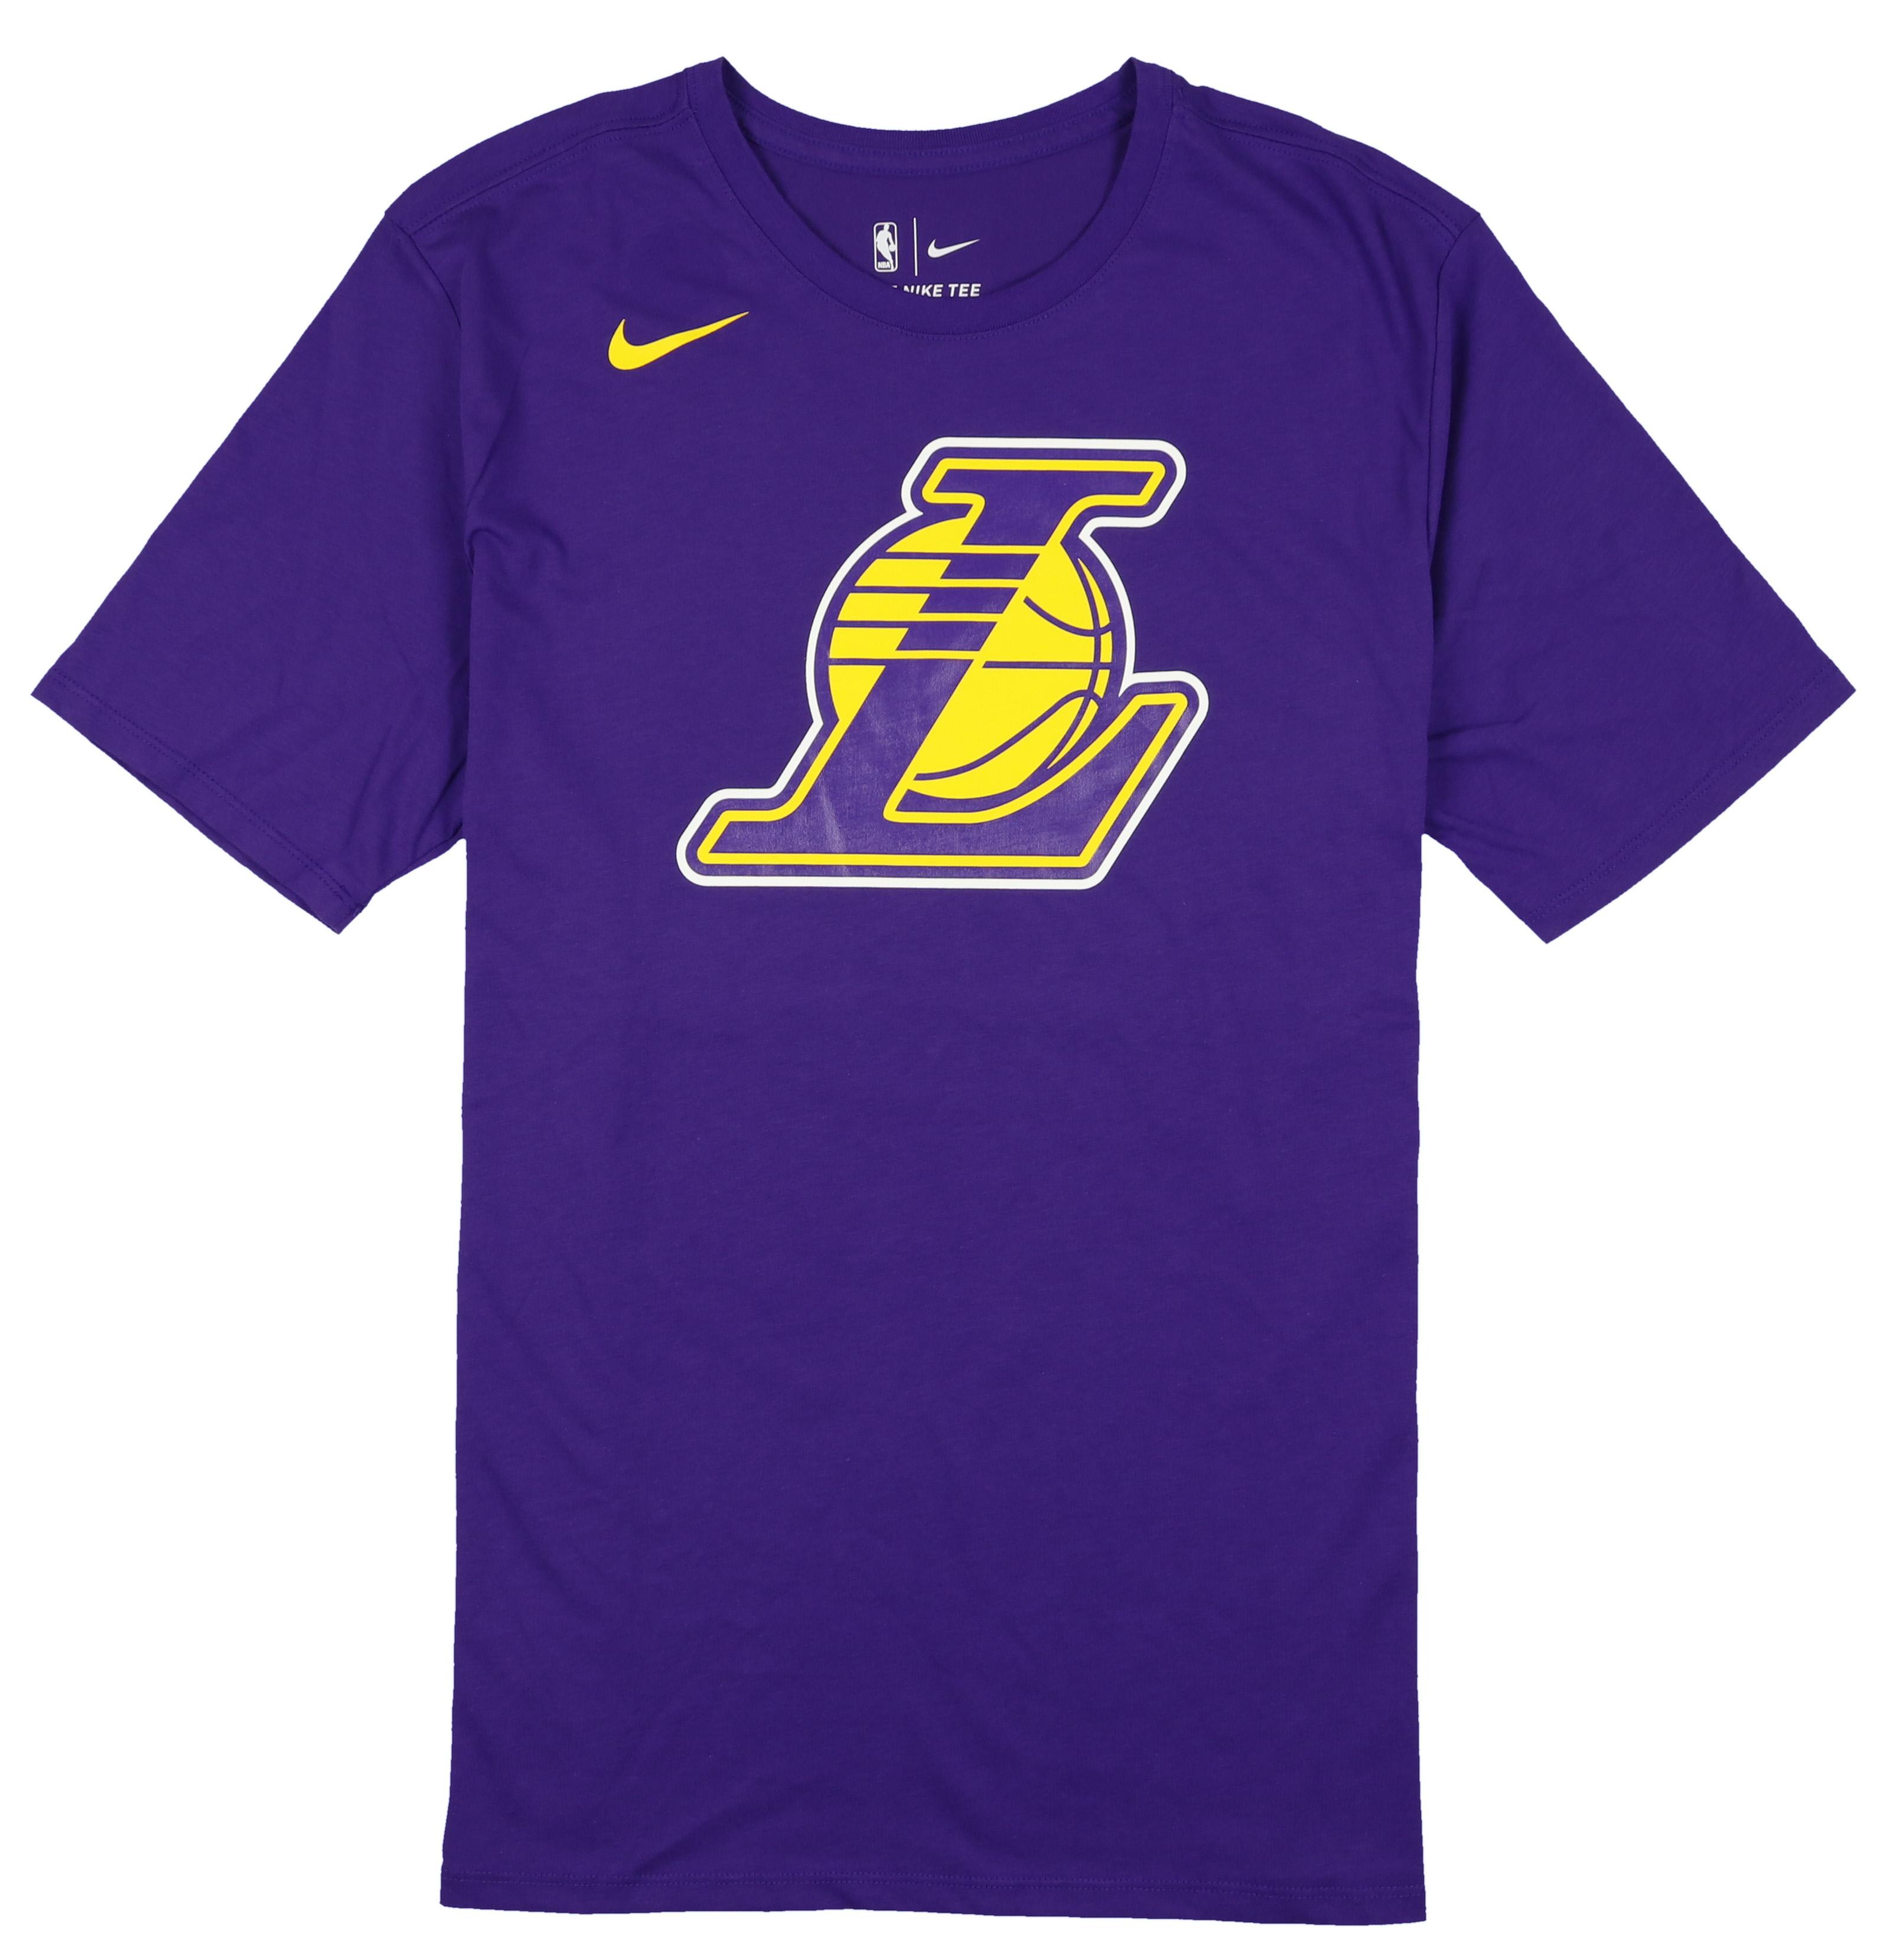 Nike Men's Los Angeles Lakers Team Logo T-Shirt Court Purple Yellow